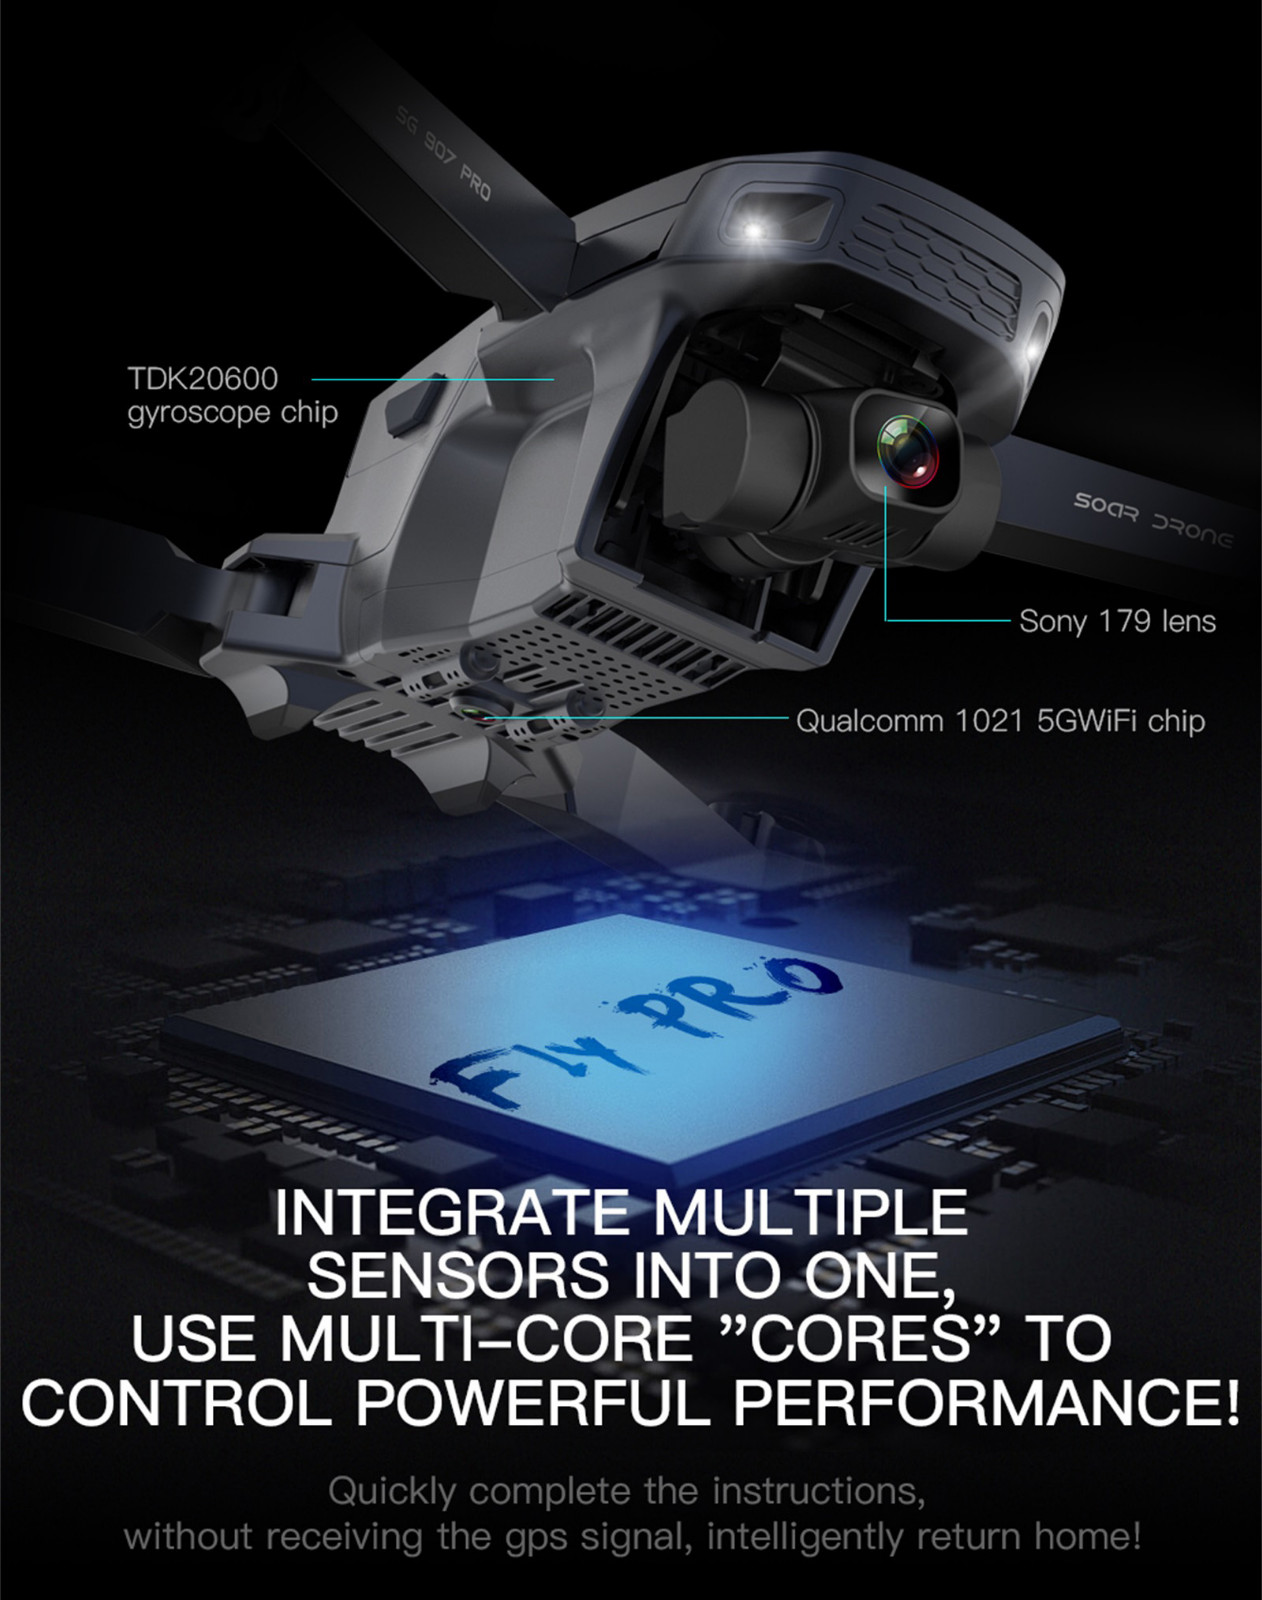 H2798cdee86f244e1a7846e66a077719a4 - 2020 New Sg907 Pro 5g Wifi Drone 2-axis Gimbal 4k Camera Wifi Gps Rc Drone Toy Rc Four-axis Professional Folding Camera Drones